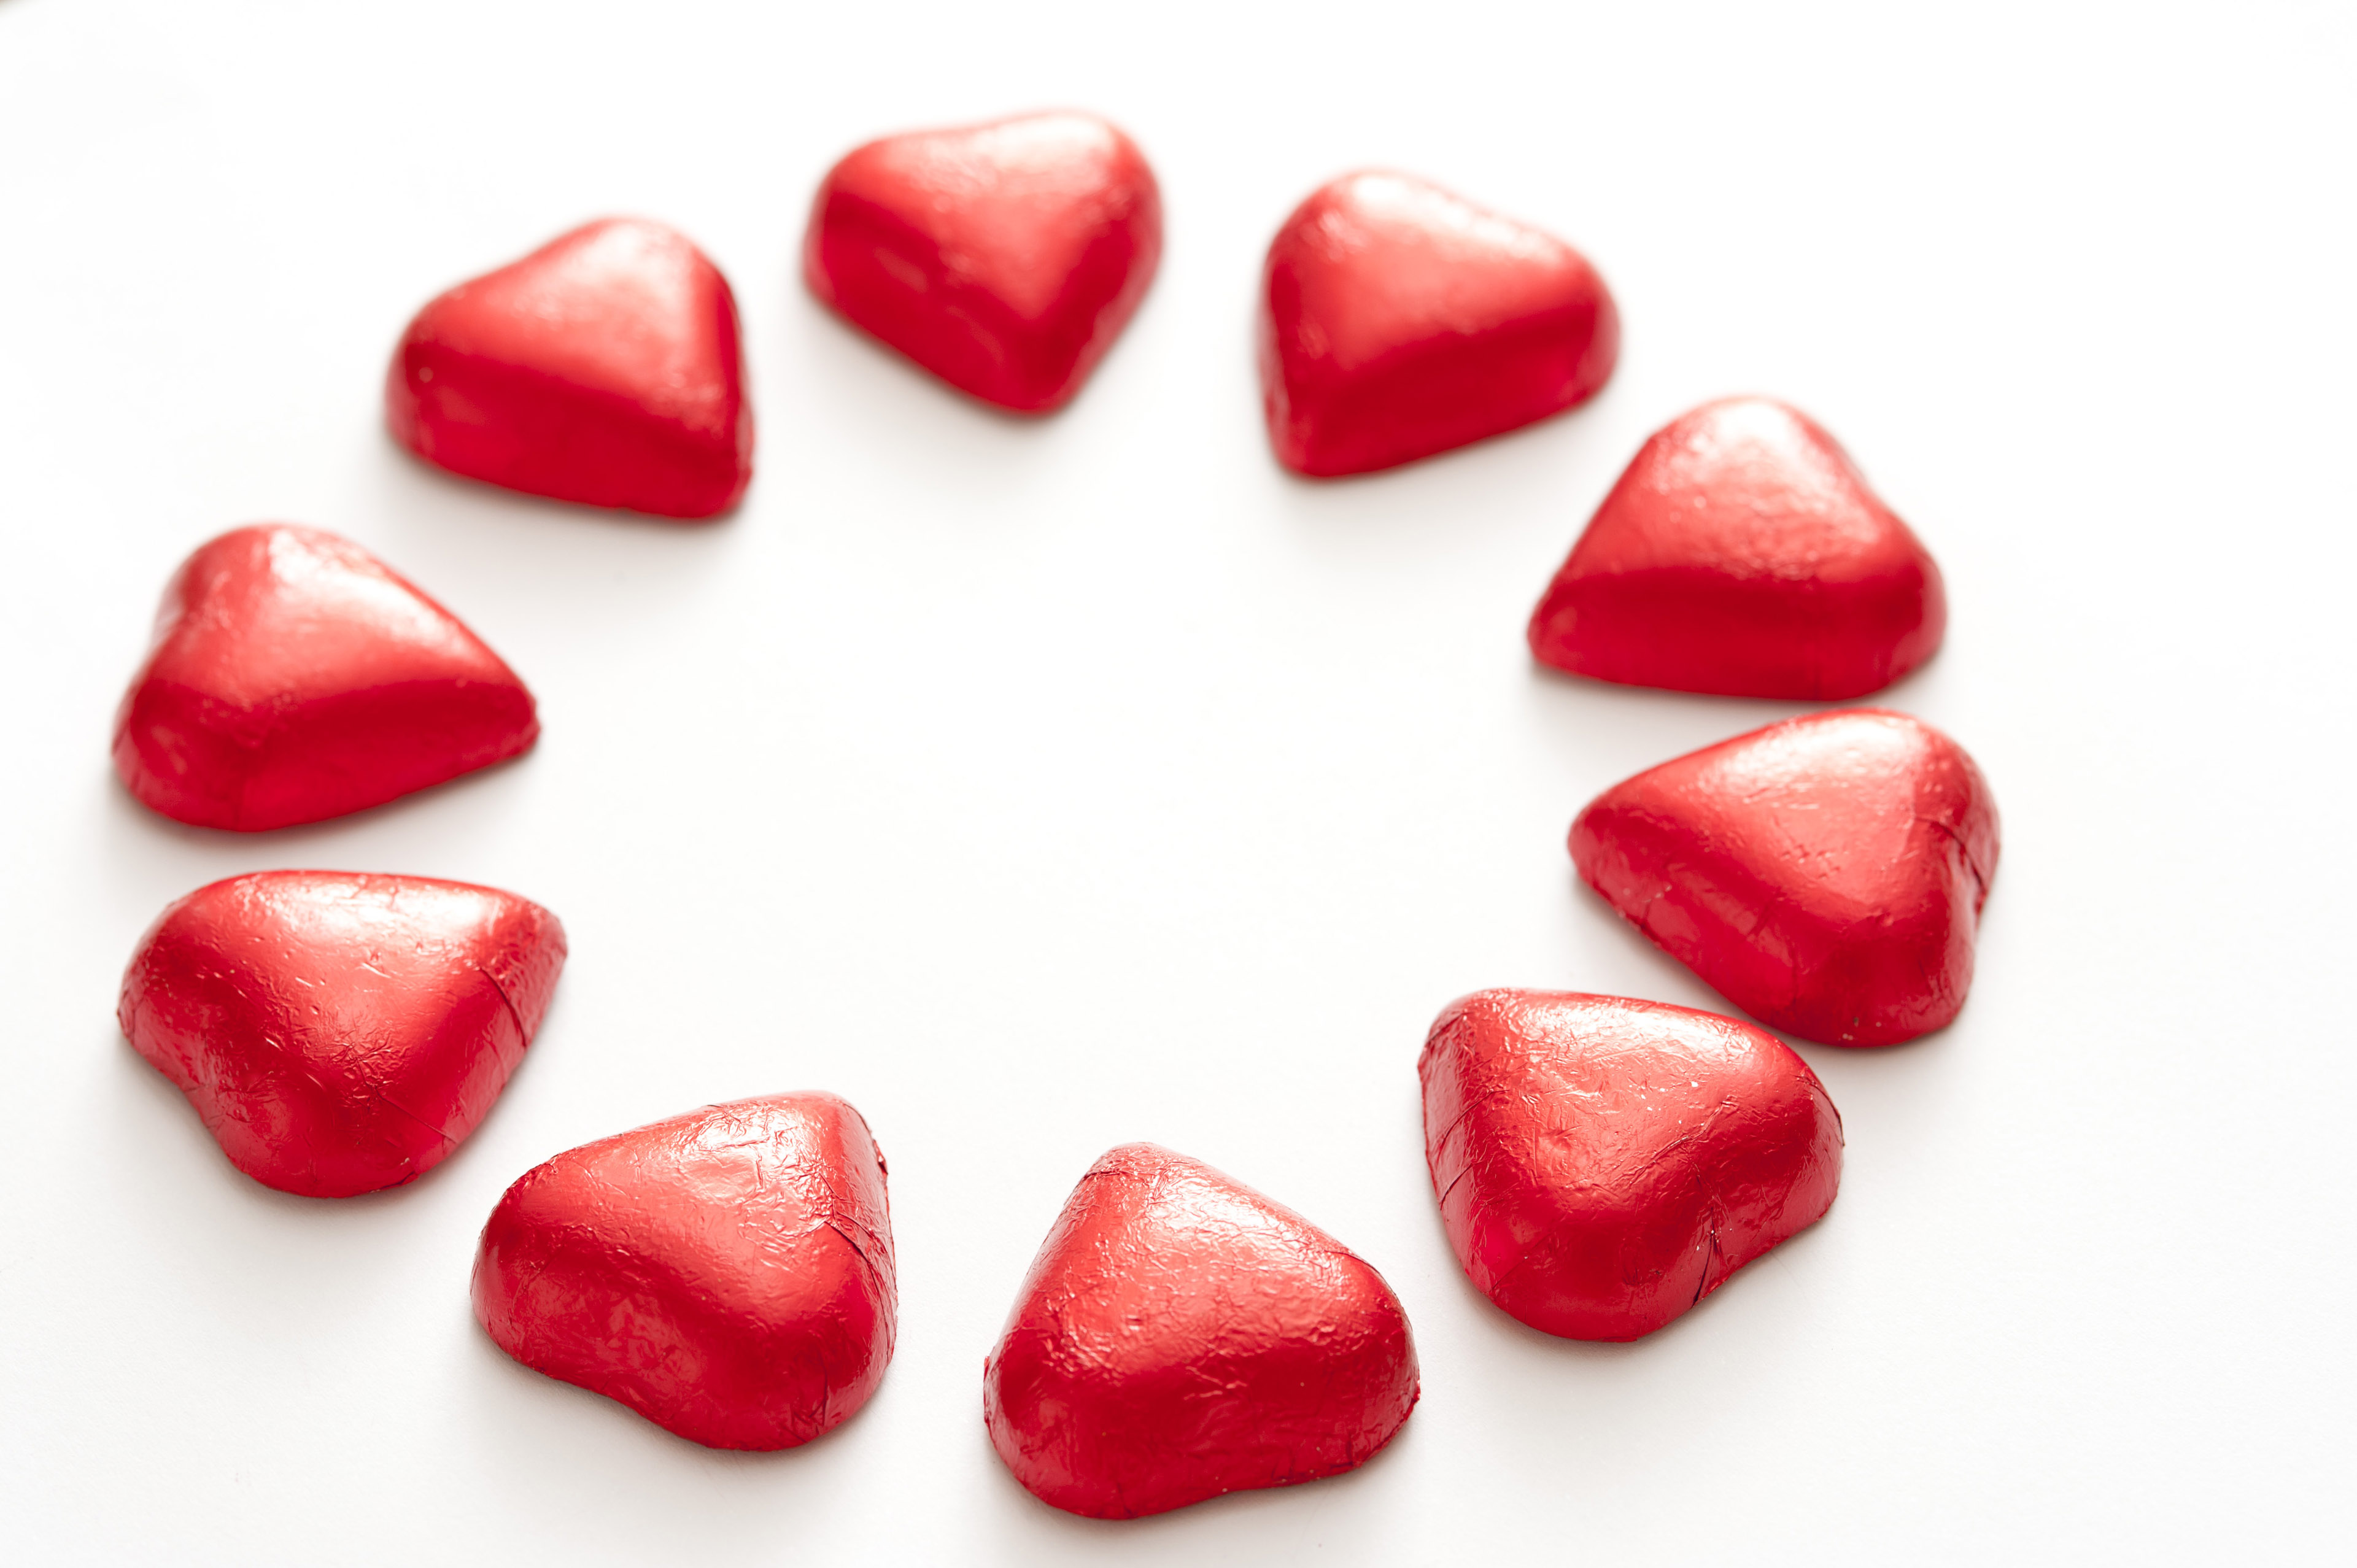 Ten bright red valentine hearts arranged in a circle isolated on a plain white background.